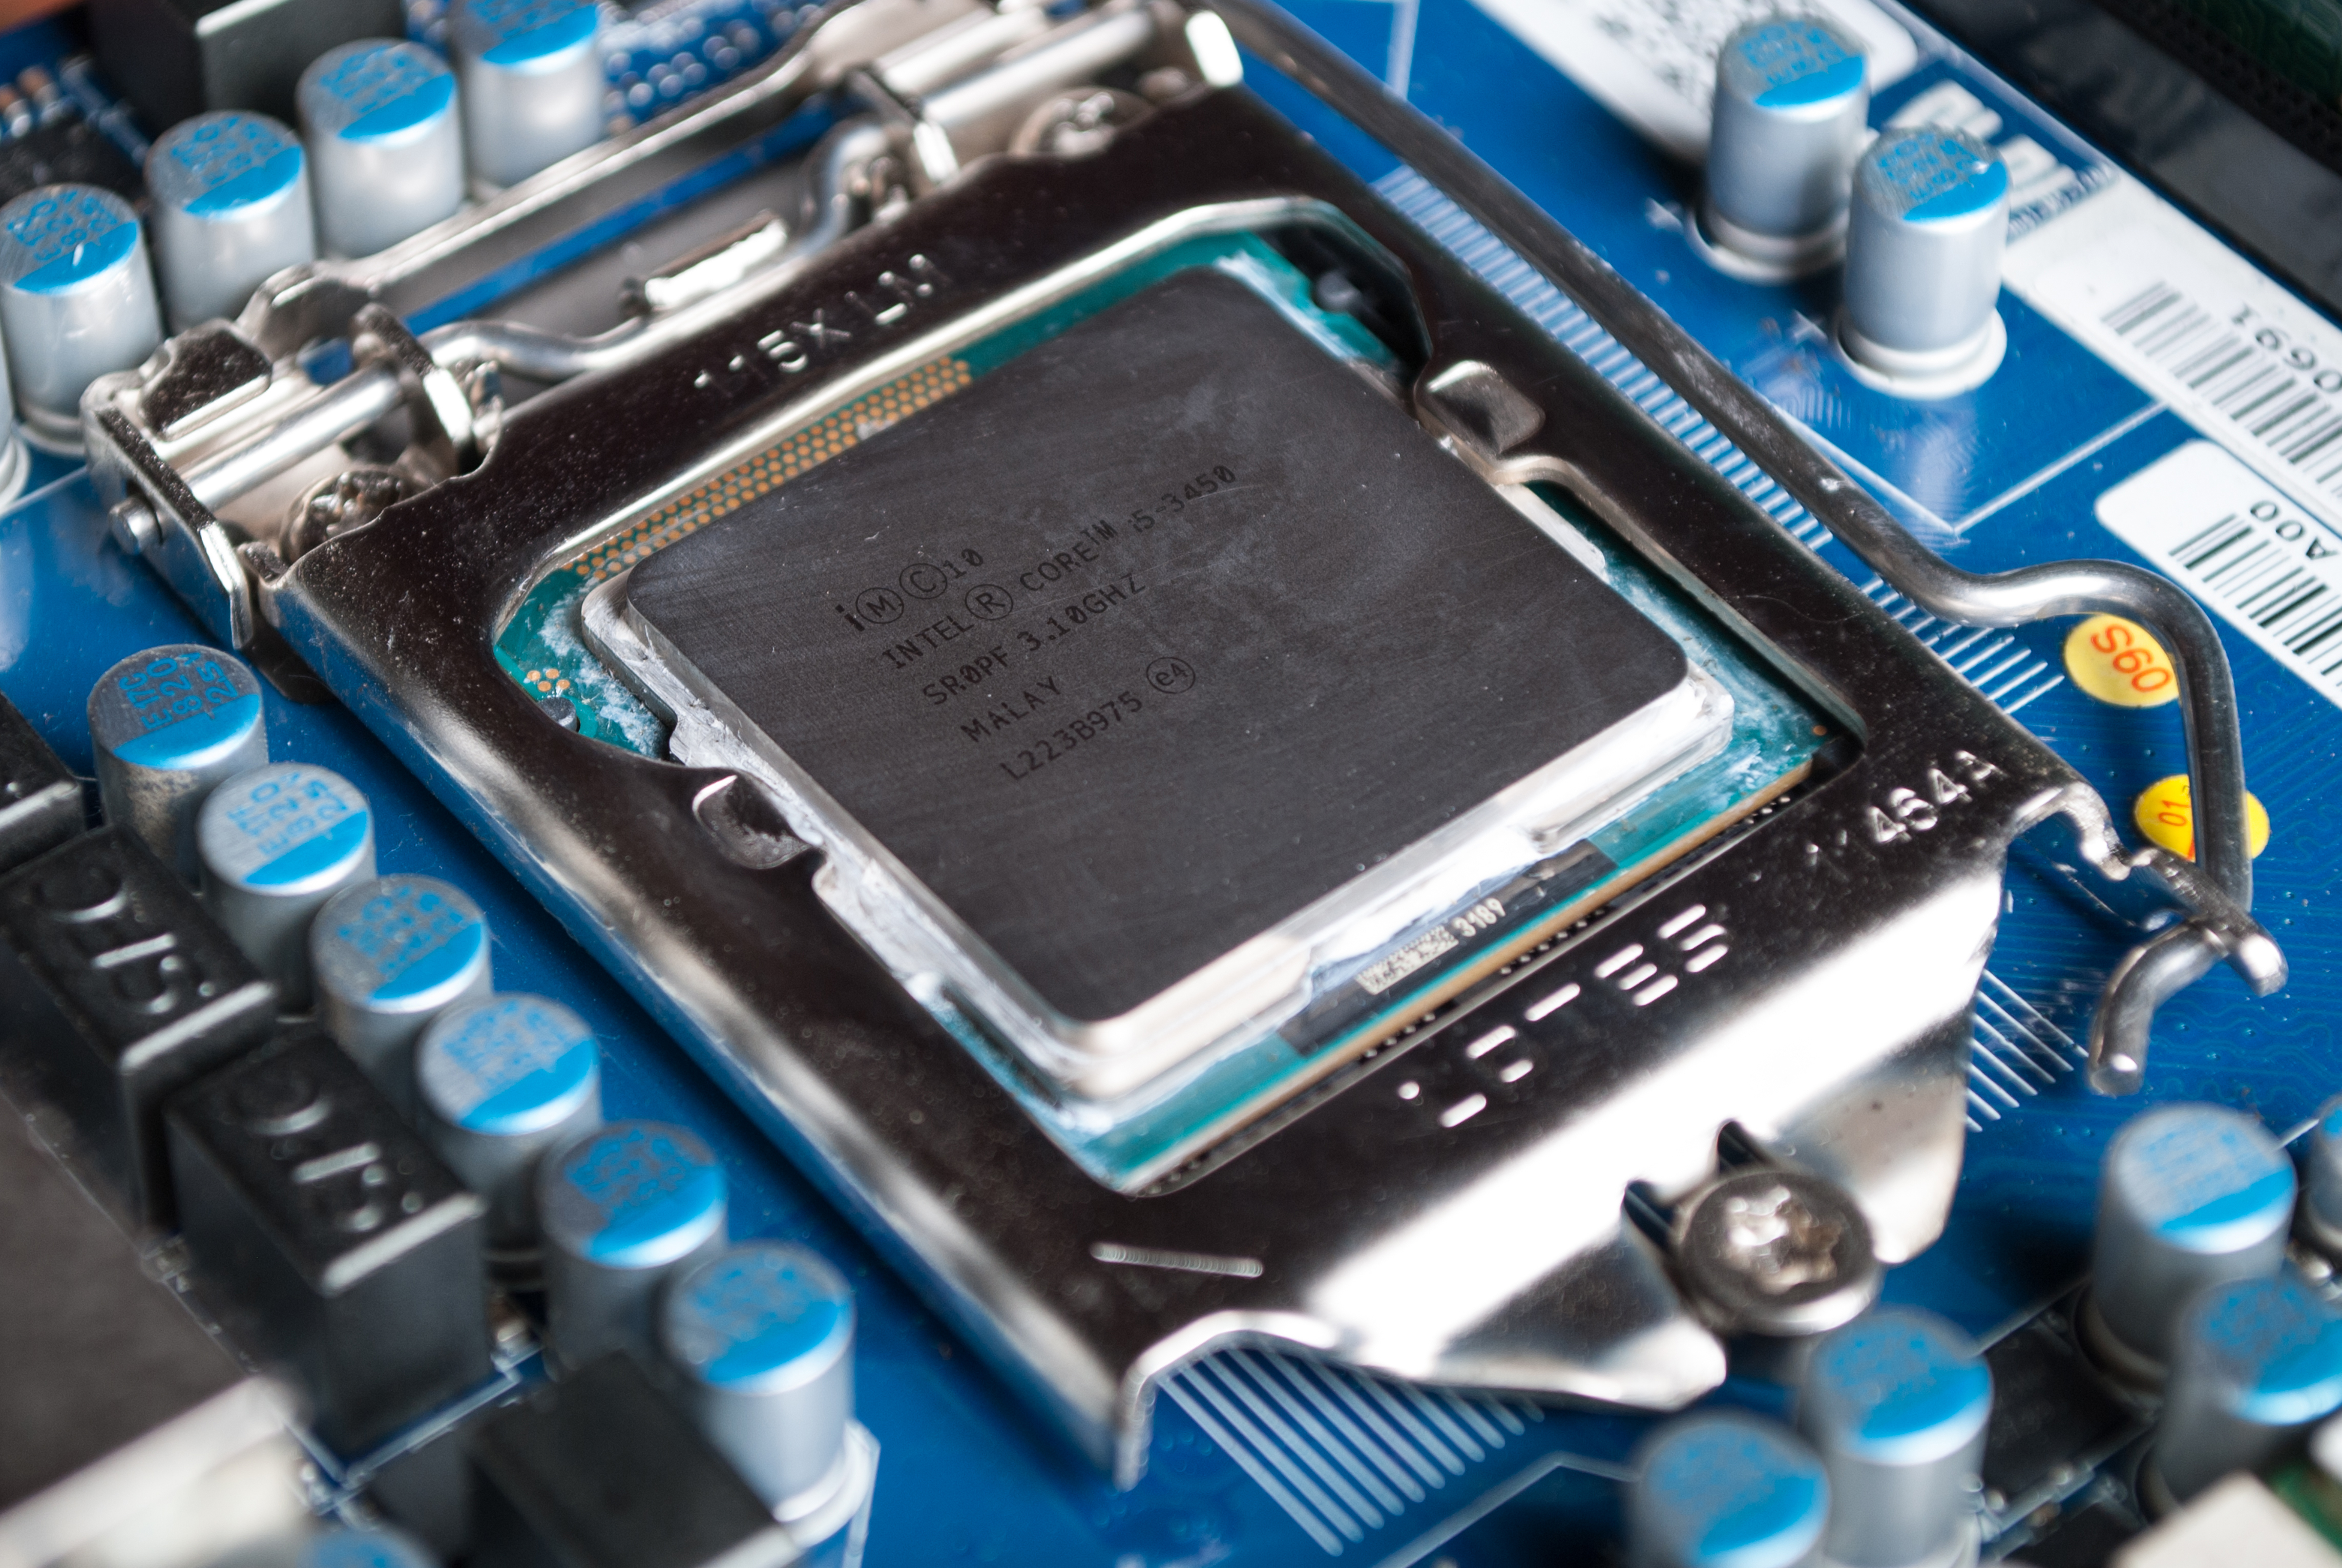 CPU Intel i5 on computer motherboard in socket